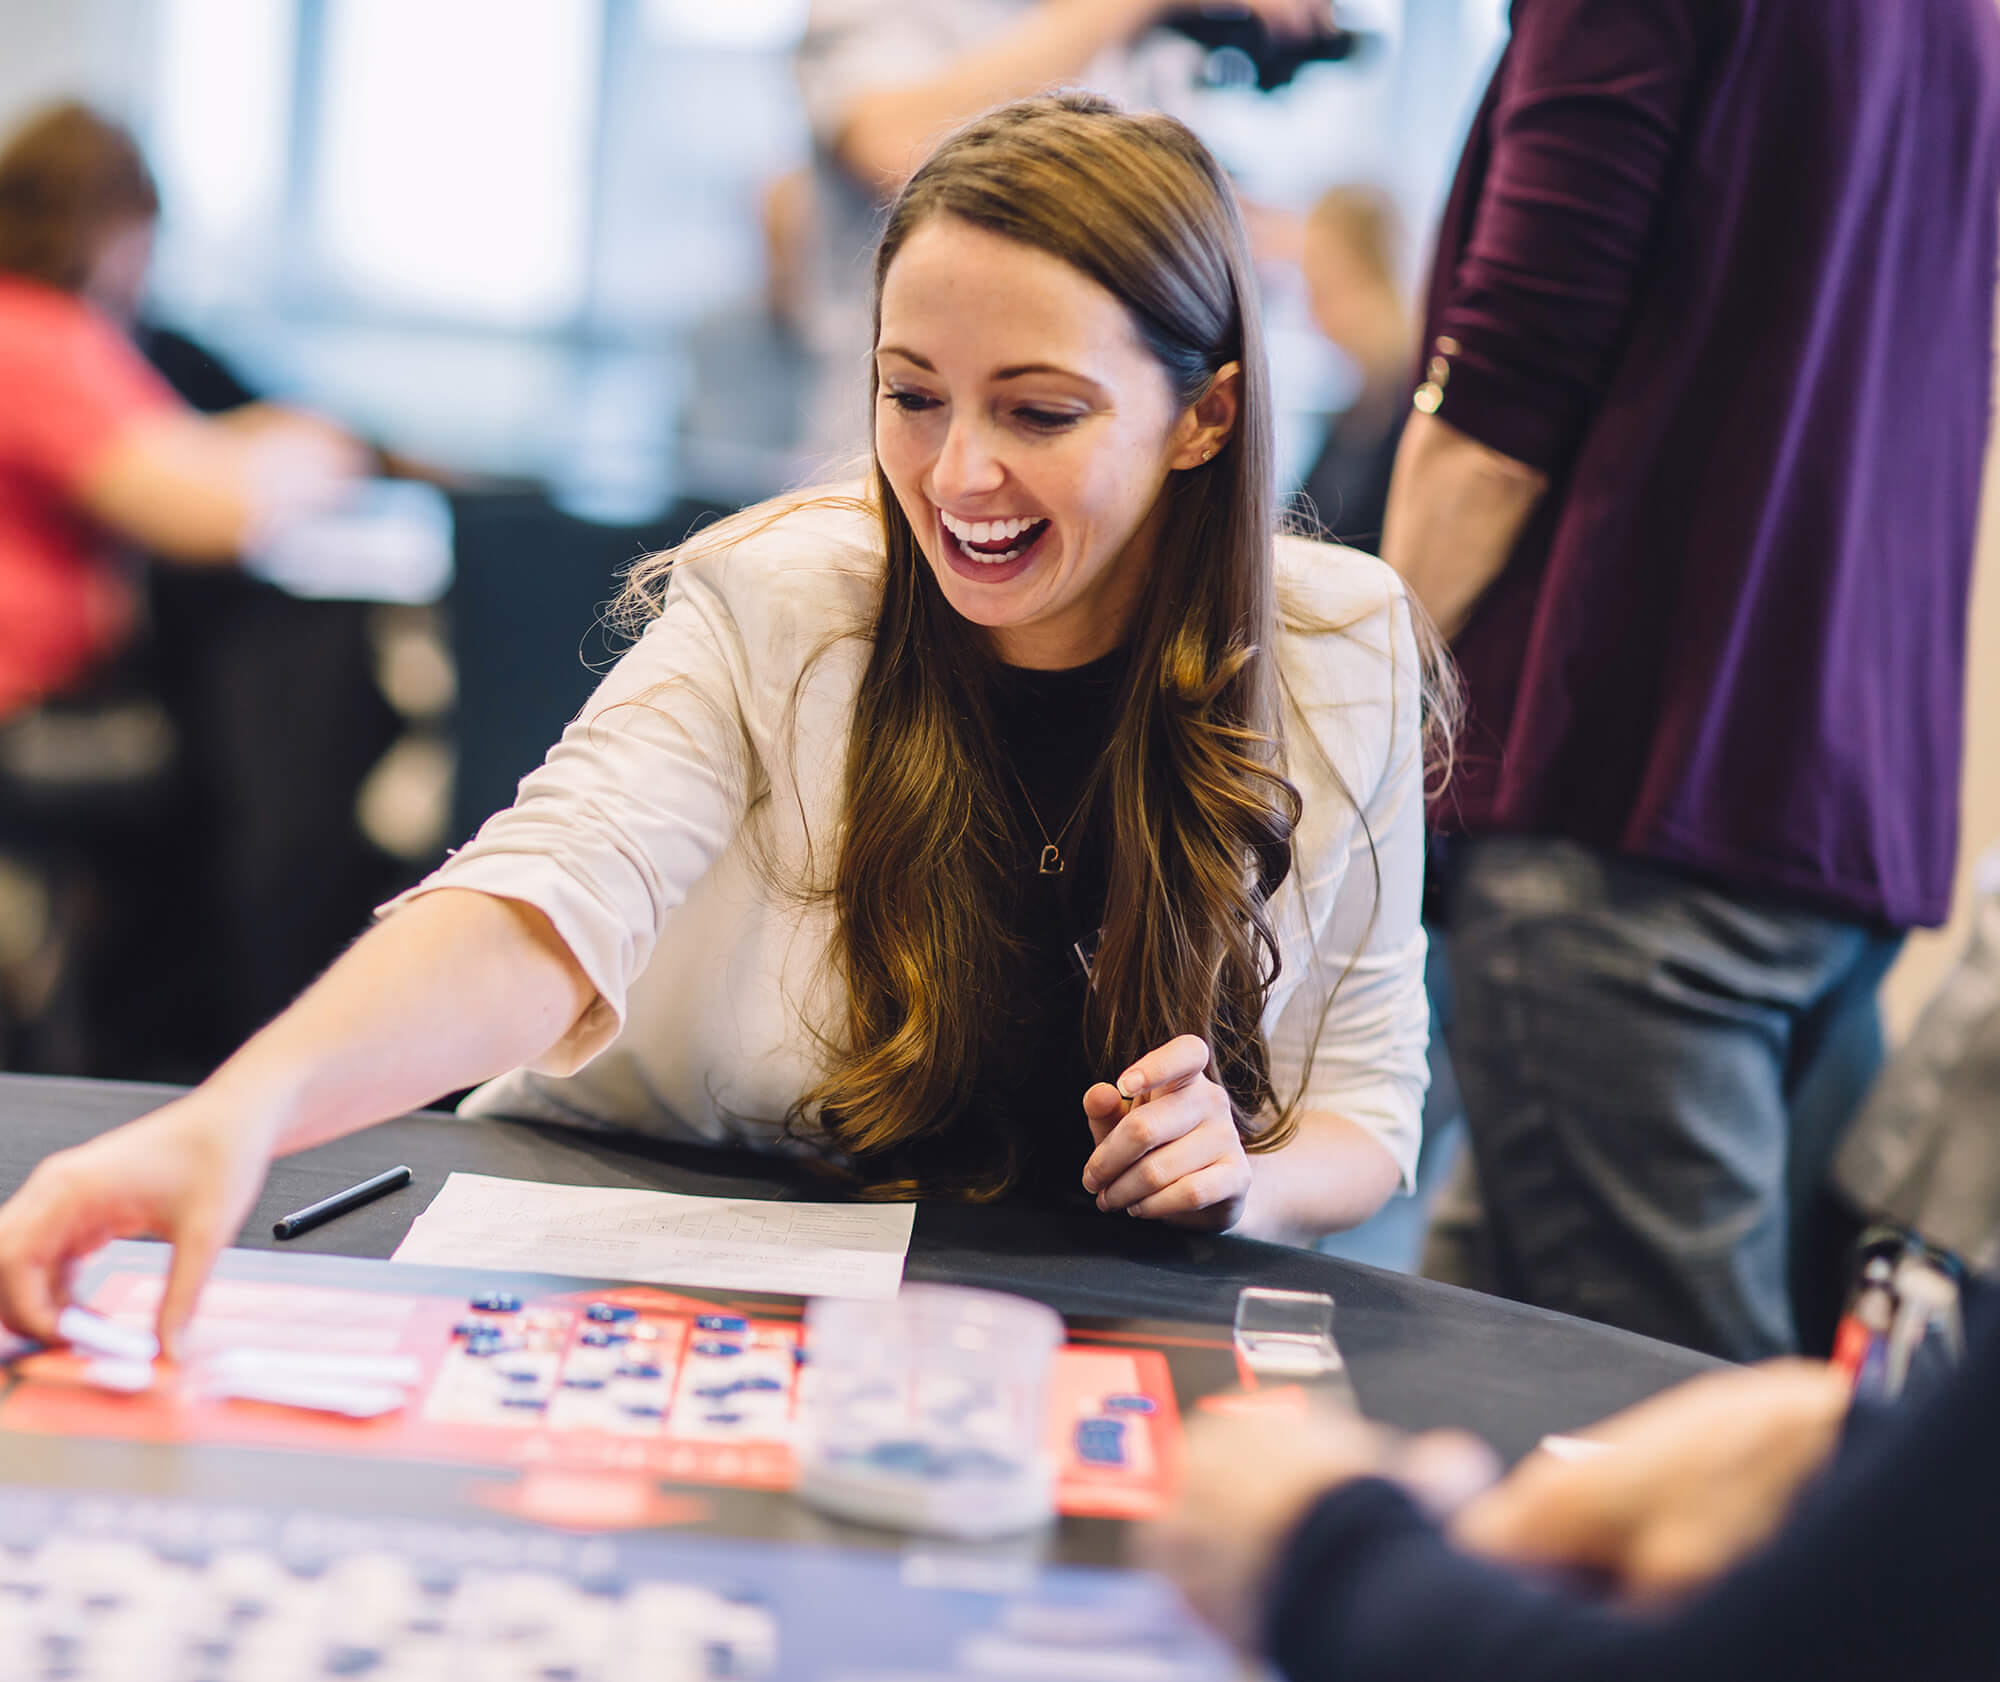 Young woman seated at table smiles and gestures while playing tabletop simulation game Friday Night at the ER